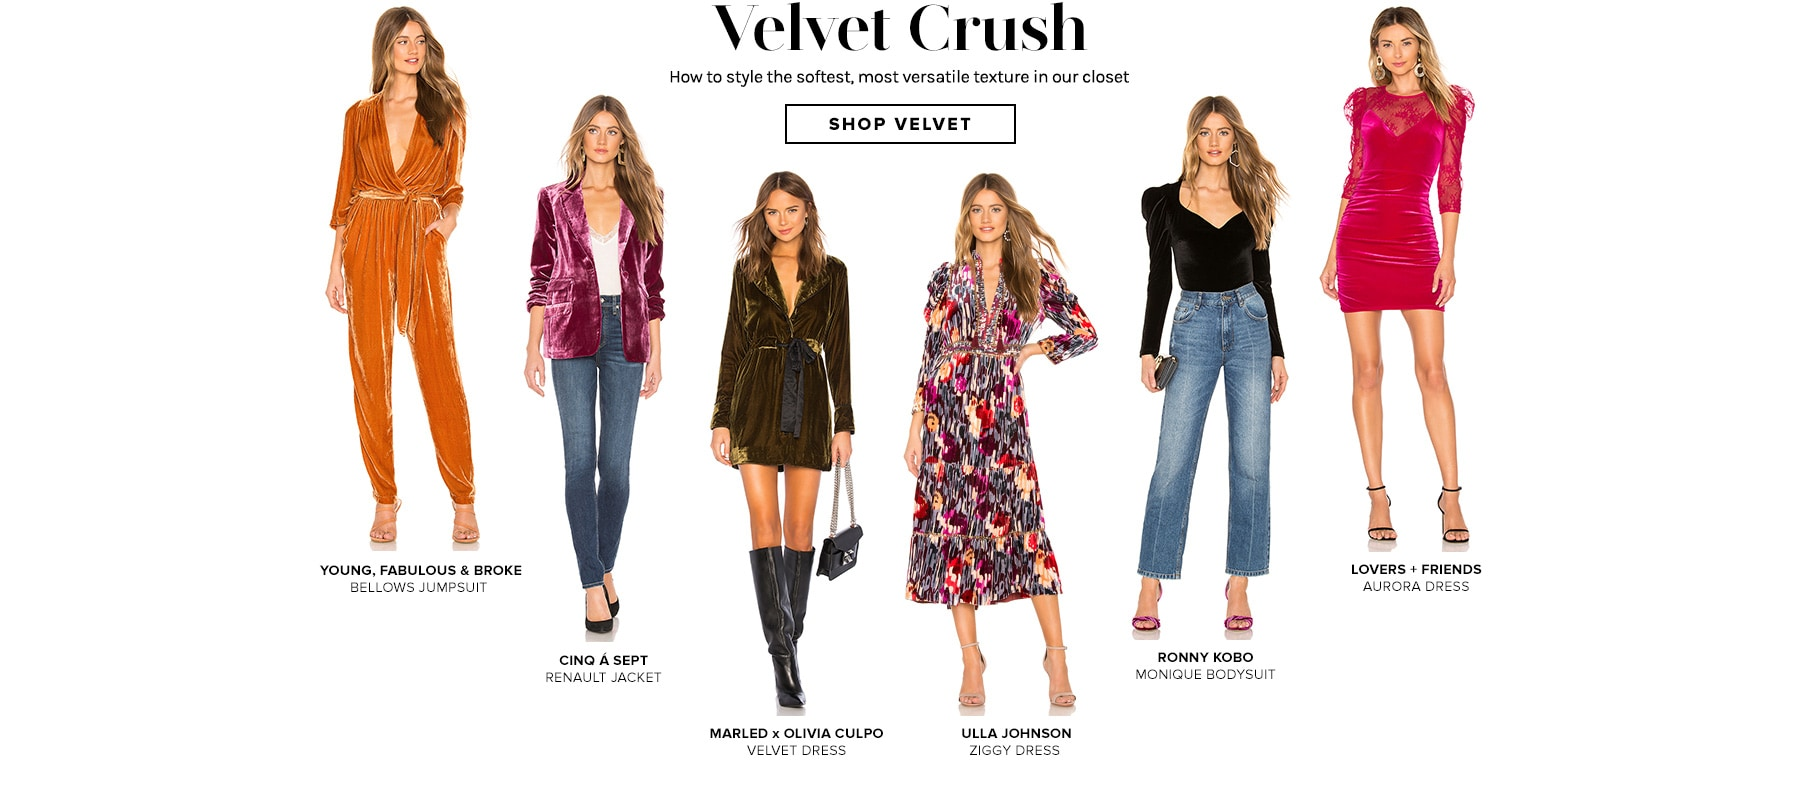 Velvet Crush. How to style the softest, most versatile texture in our closet. Shop velvet.